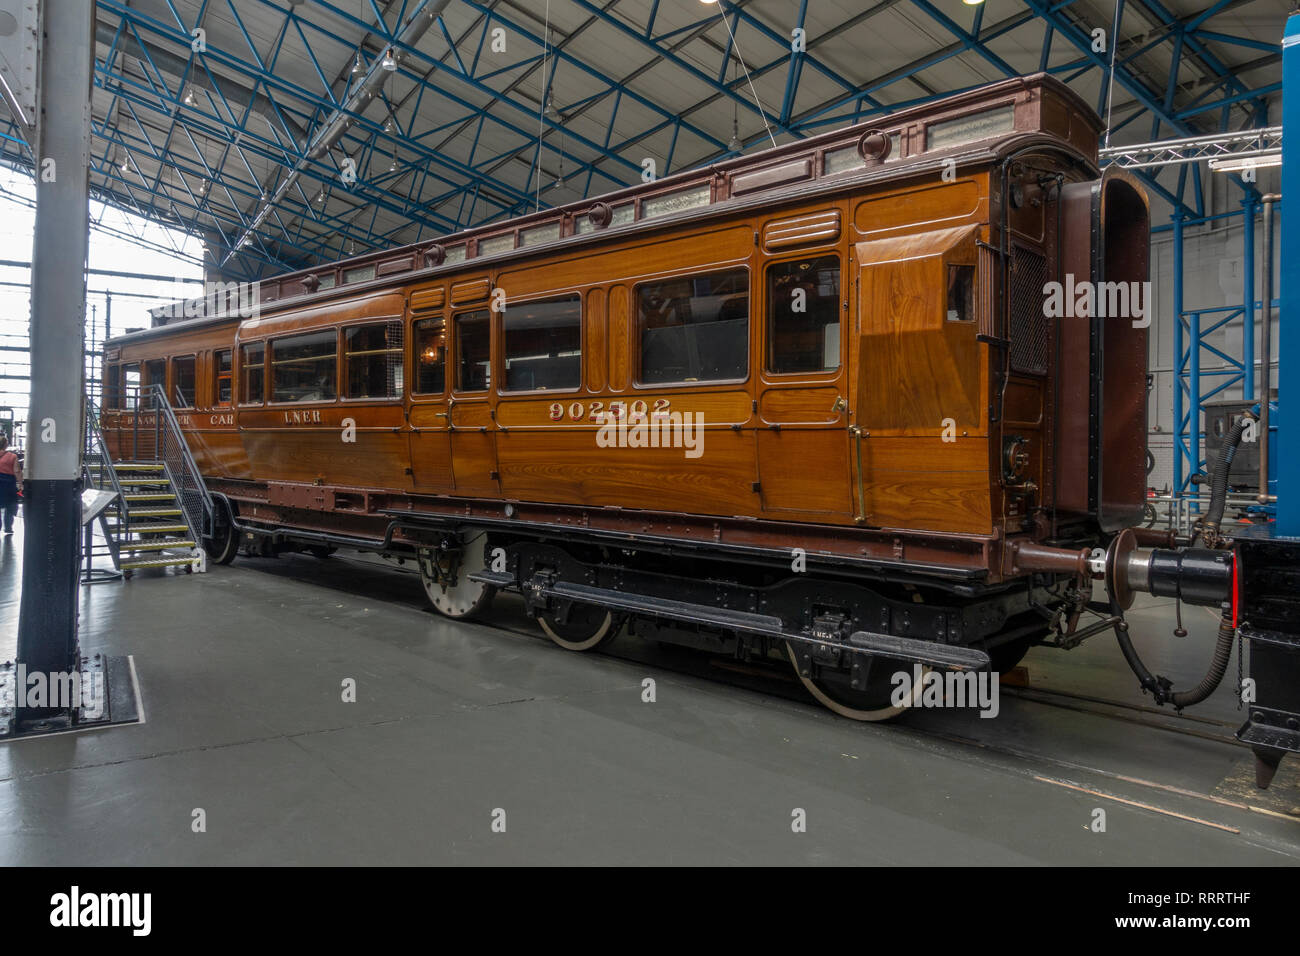 A North Eastern Railway Dynamometer car from 1906 on display in the National Railway Museum, York, UK. (See notes) - Stock Image